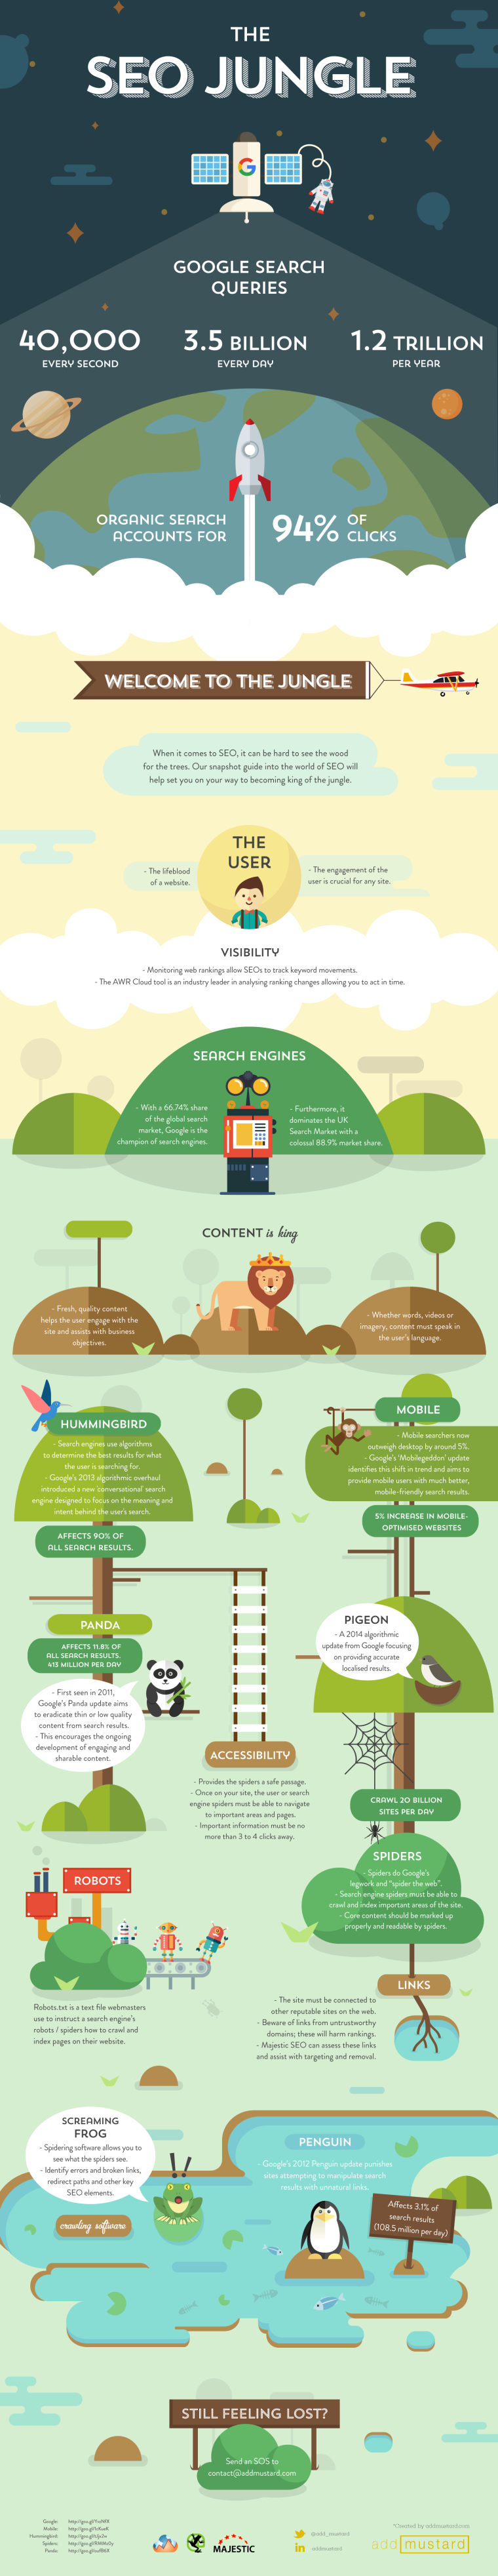 A Snapshot of SEO in 2015 and Beyond | SEJ